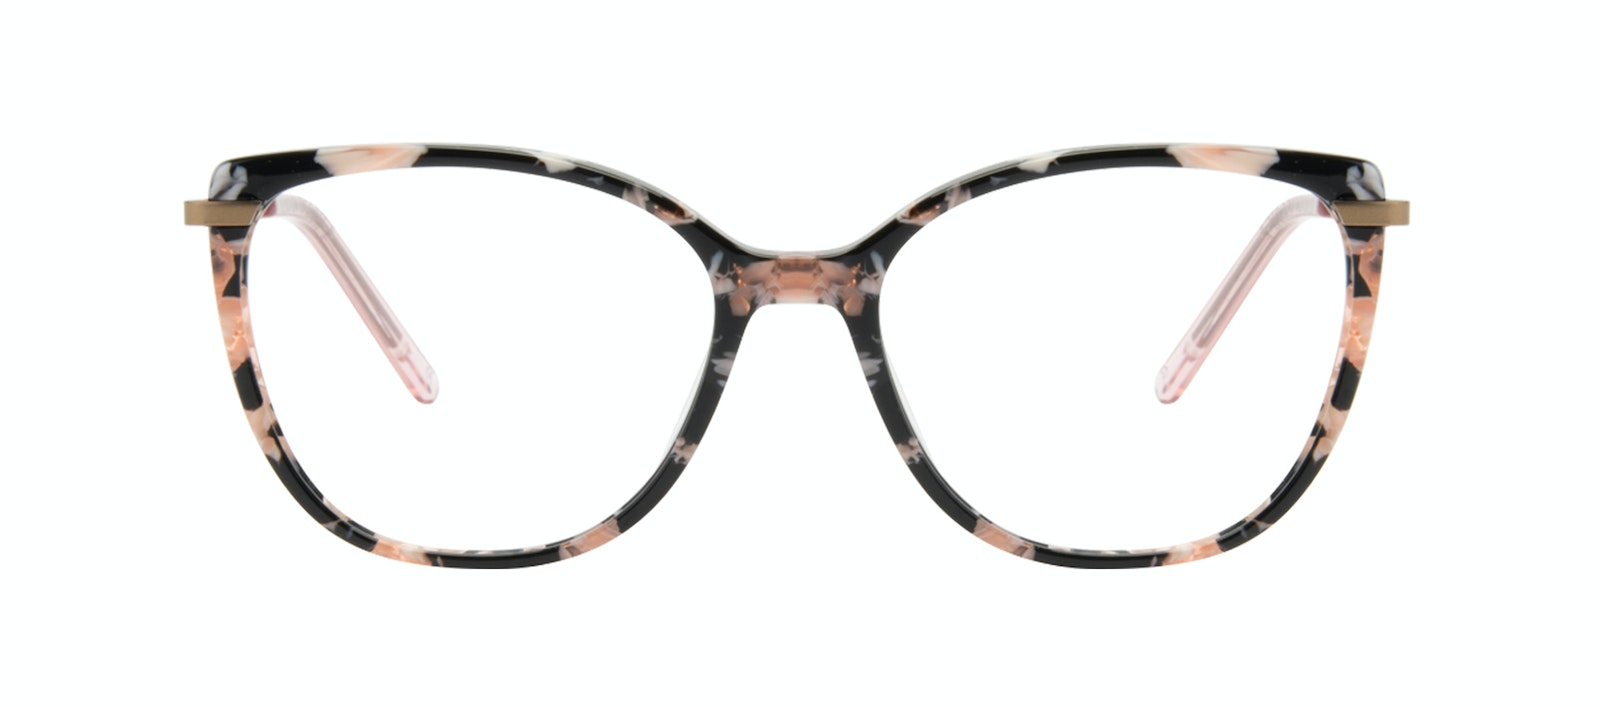 Affordable Fashion Glasses Rectangle Square Eyeglasses Women Illusion Licorice Front